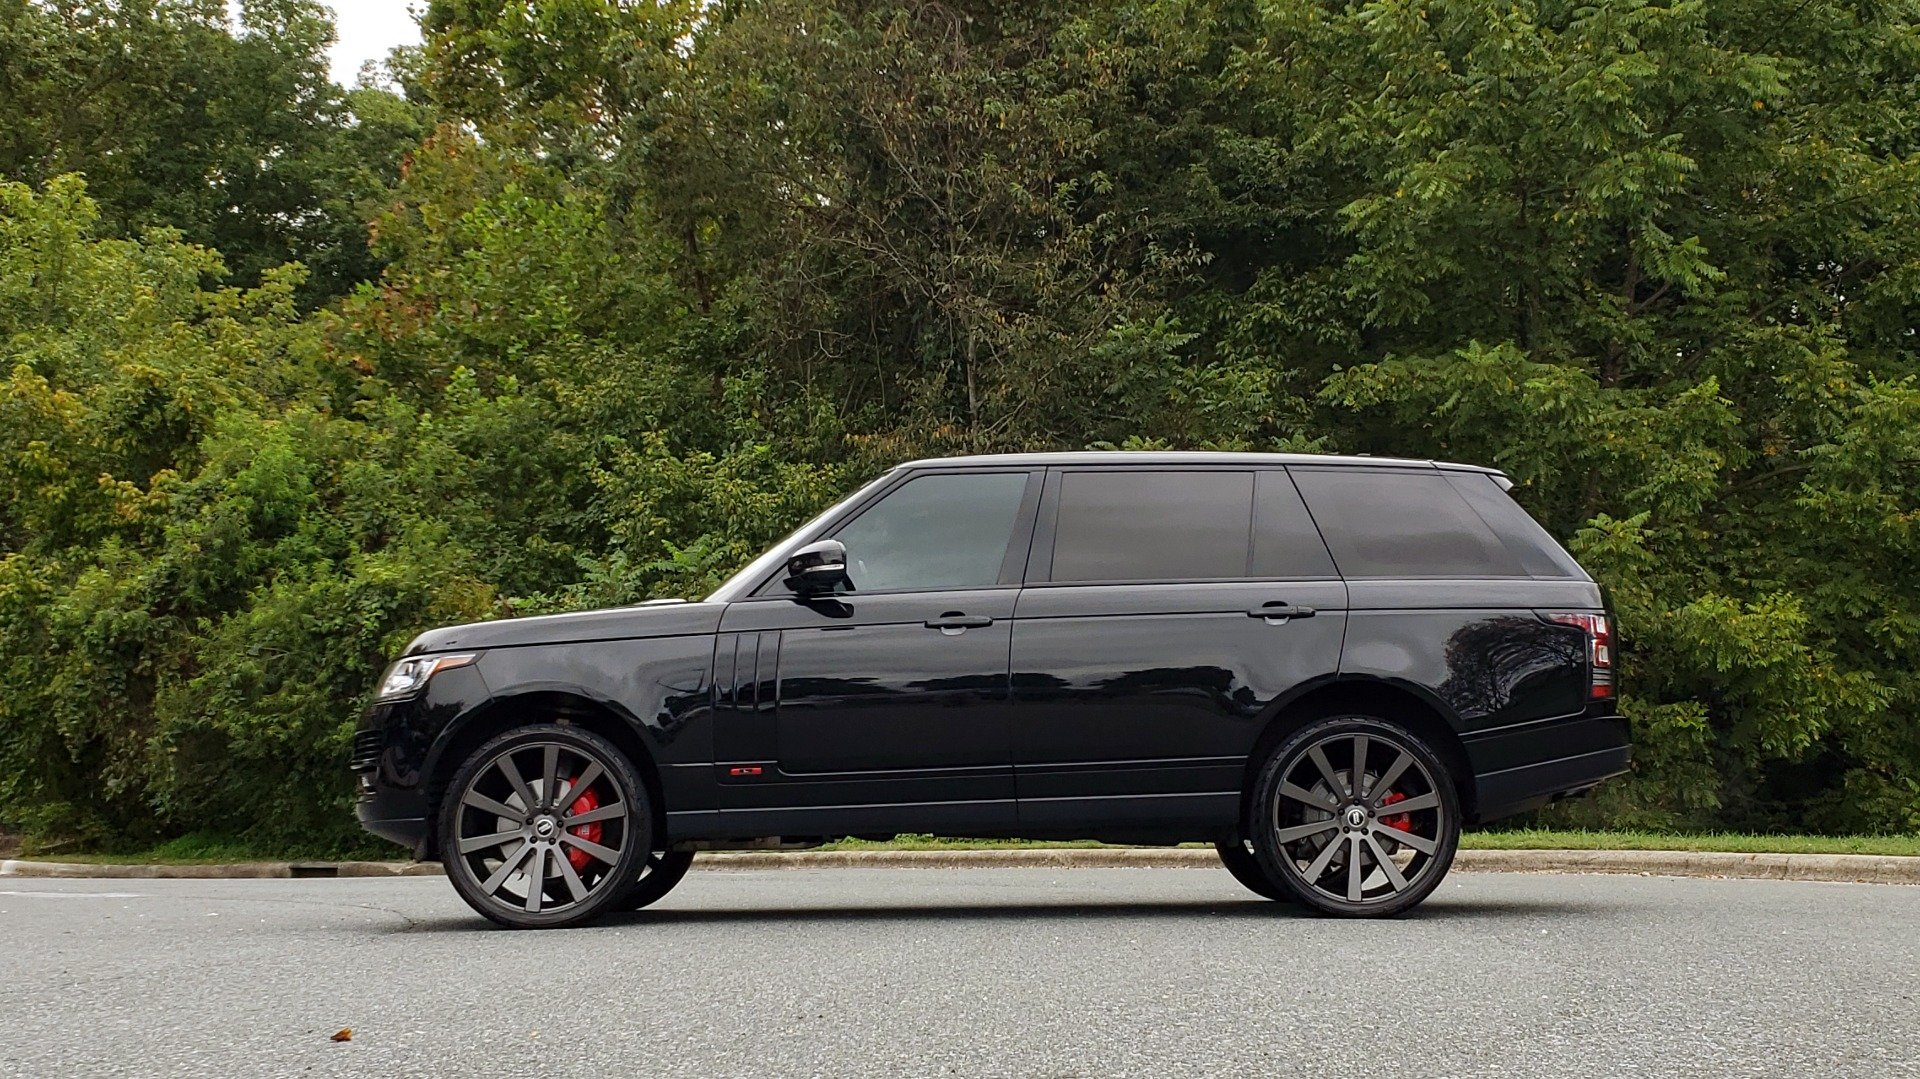 Used 2016 Land Rover RANGE ROVER AUTOBIOGRAPHY / SC-V8 / LWB / PANO-ROOF / NAV / MERIDIAN / ENT / REARVIEW for sale $71,495 at Formula Imports in Charlotte NC 28227 3